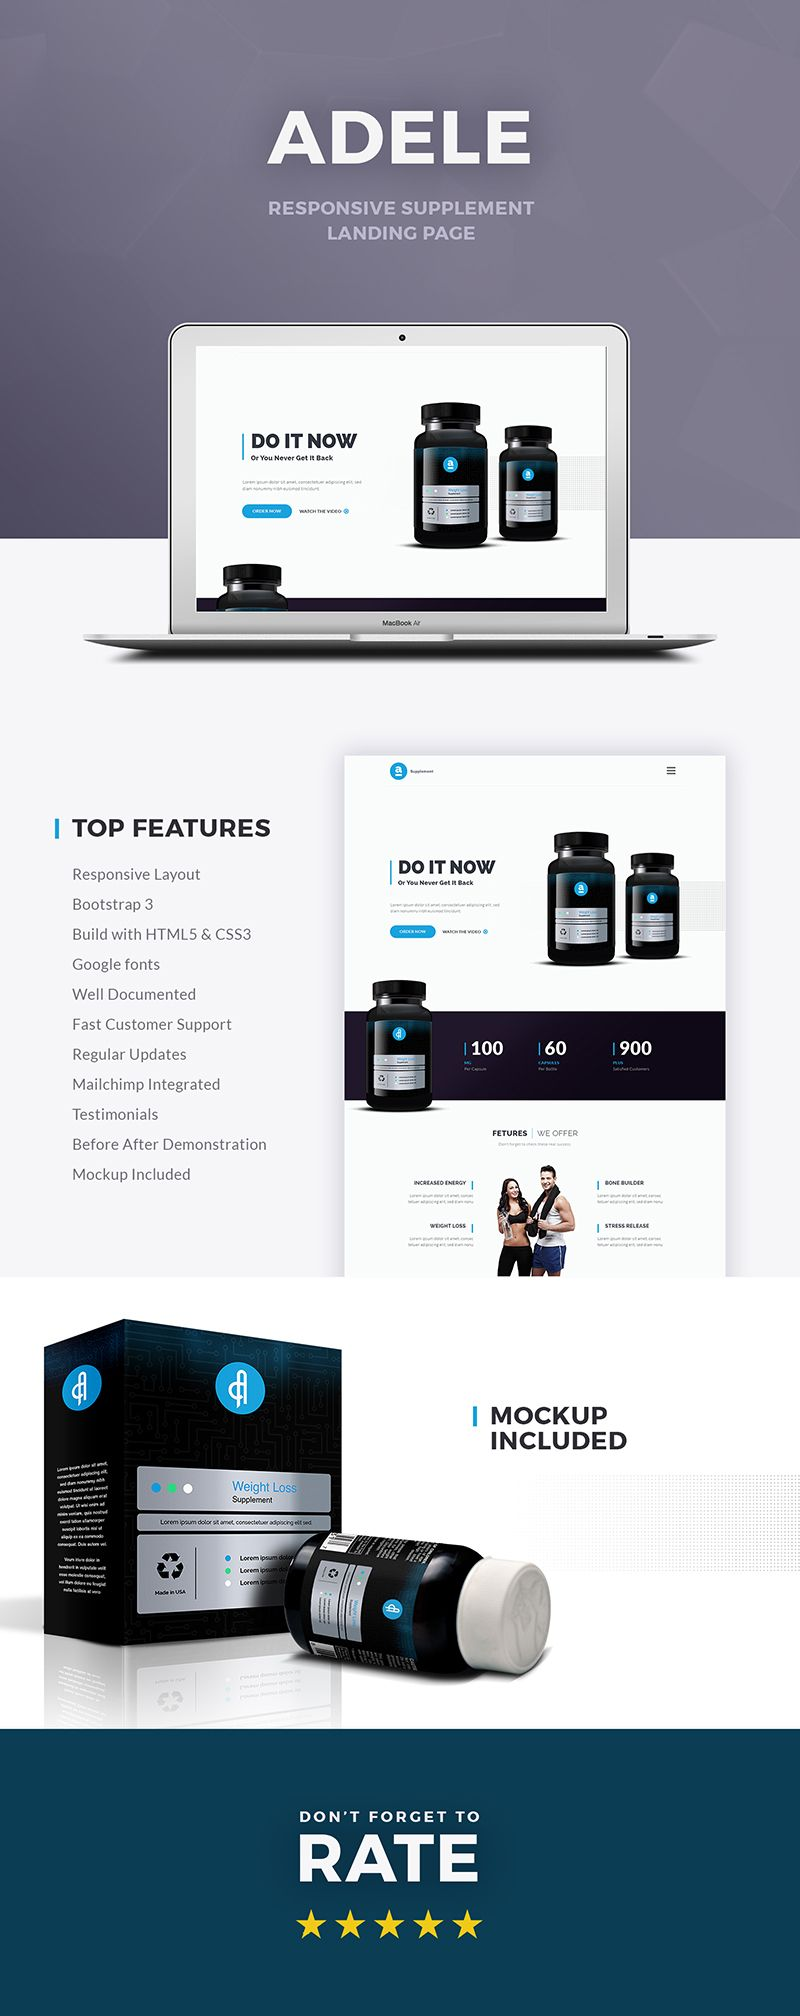 Adele Responsive Supplement HTML Landing Page - 1